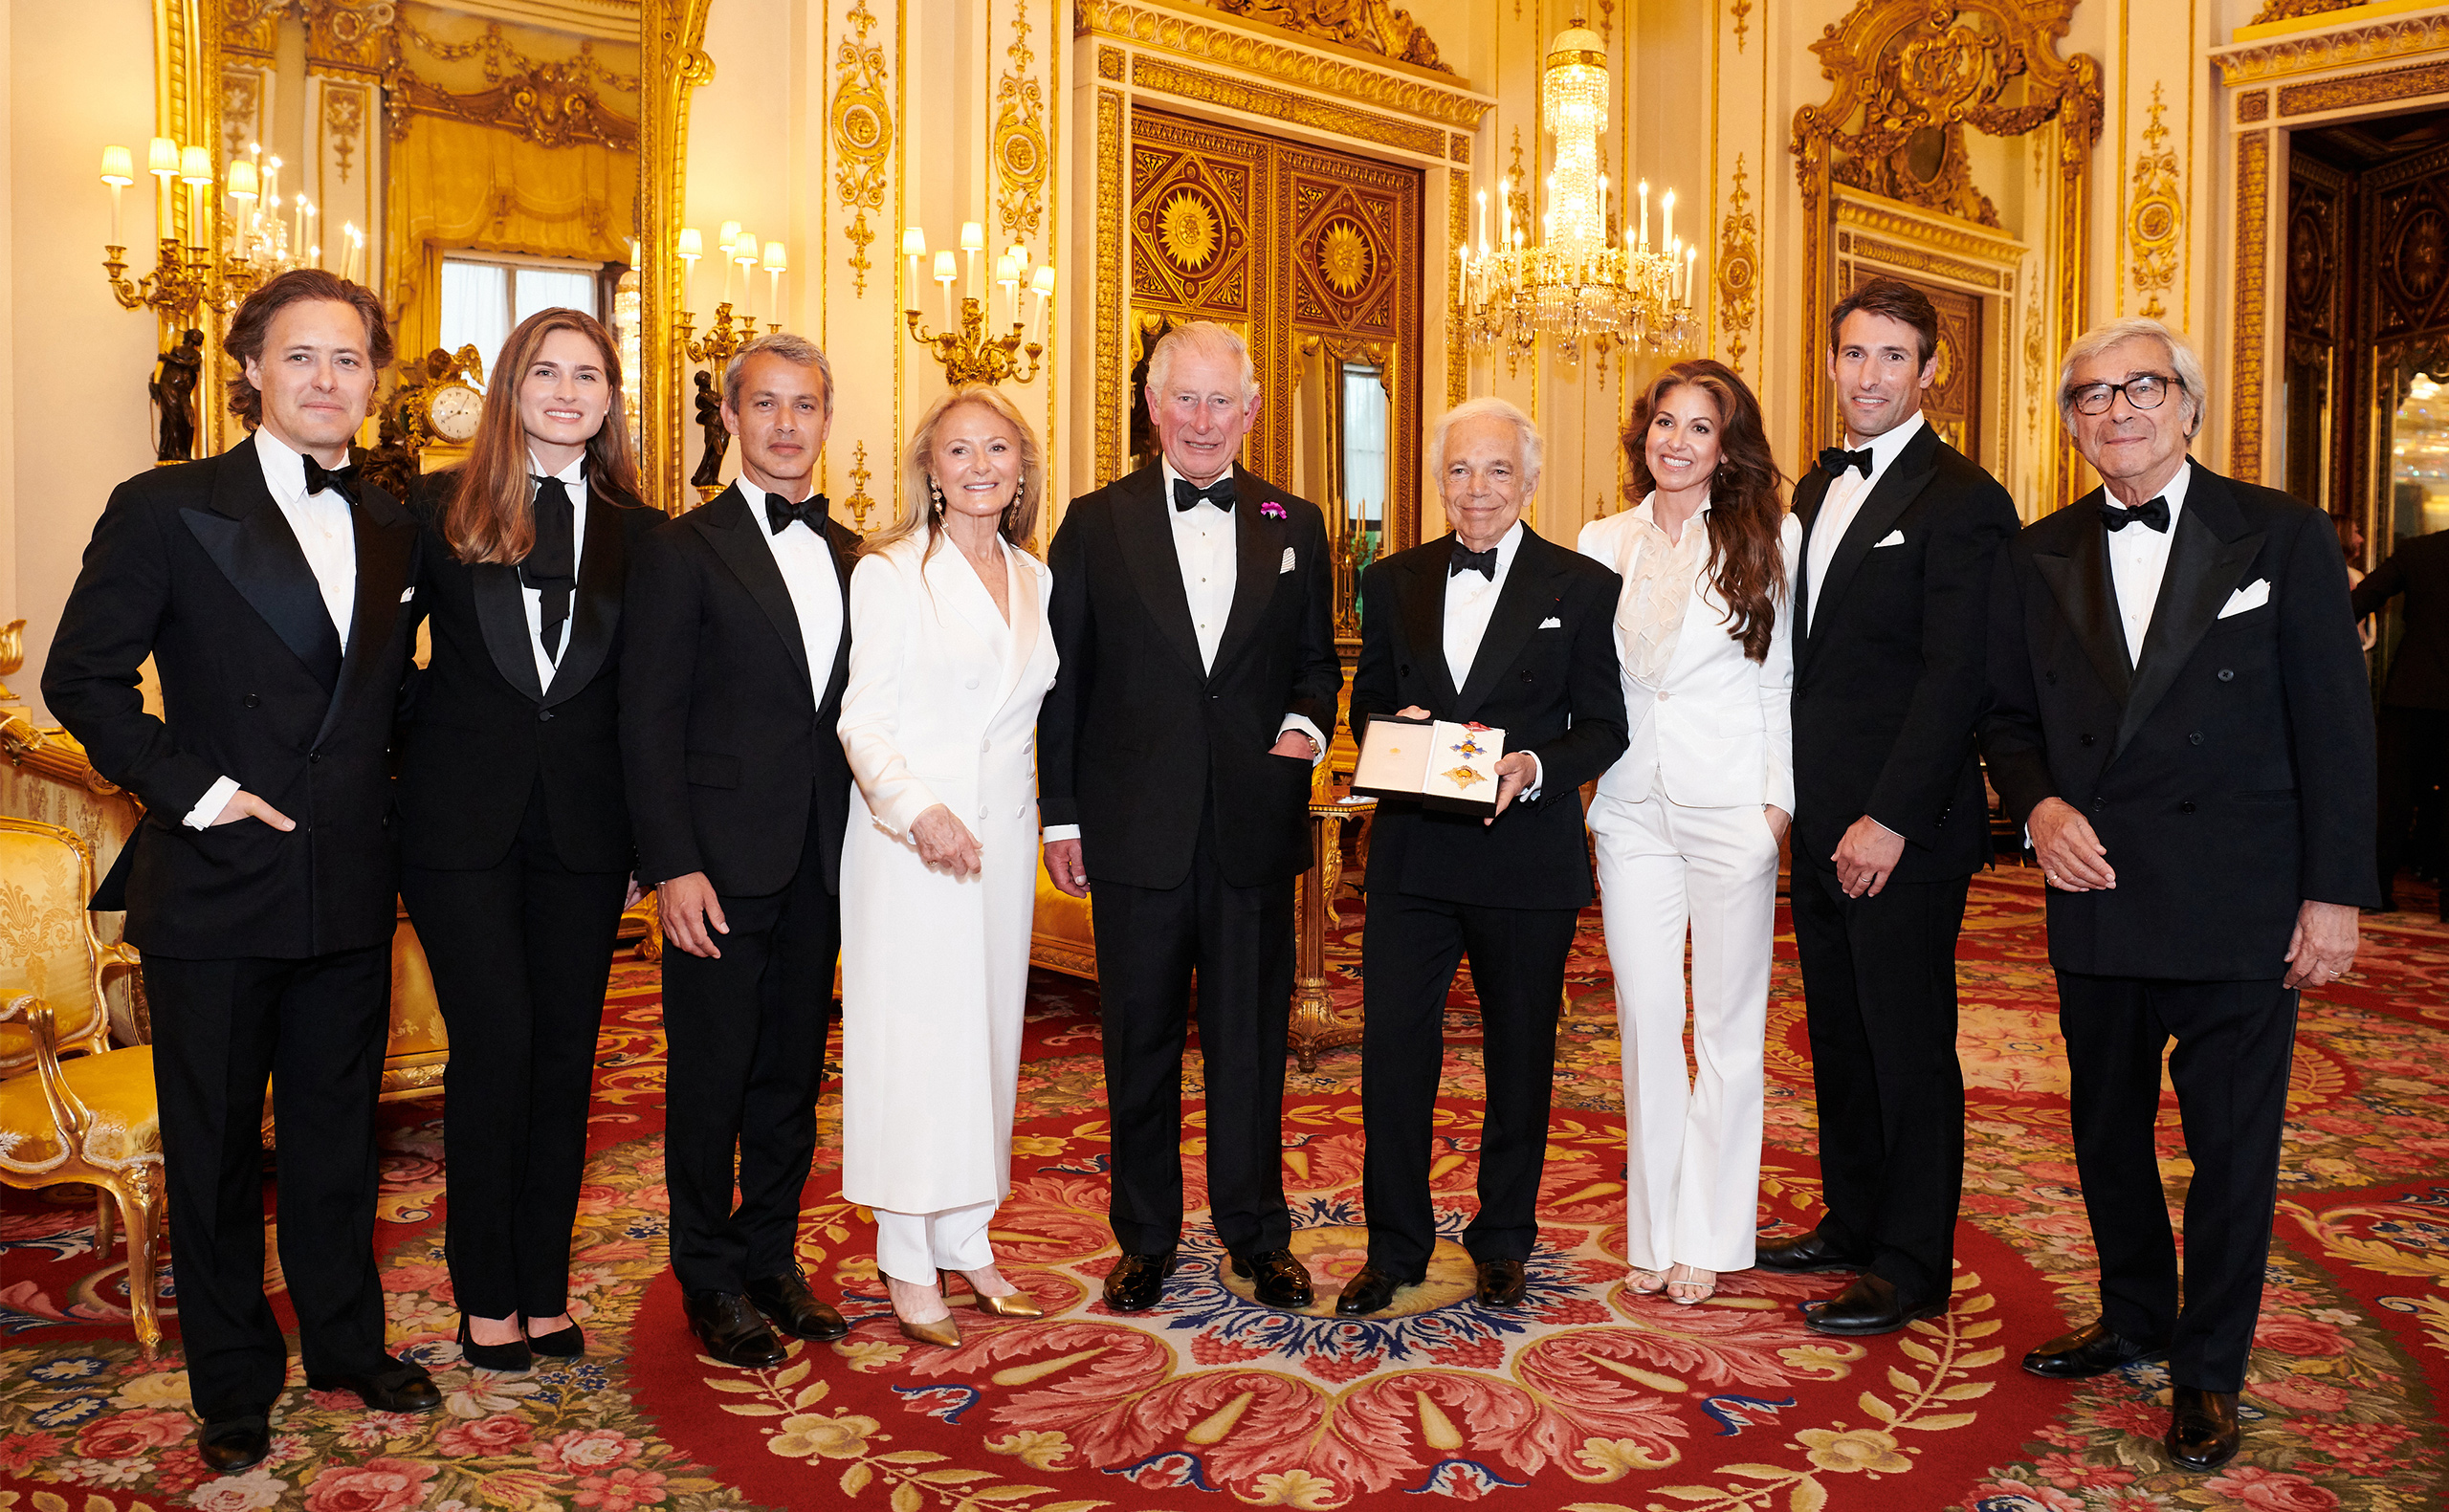 David Lauren, Lauren Bush Lauren, Andrew Lauren, Ricky Lauren, His Royal Highness The Prince of Wales, Ralph Lauren, Dylan Lauren, Paul Arrouet, and Jerry Lauren at Buckingham Palace.